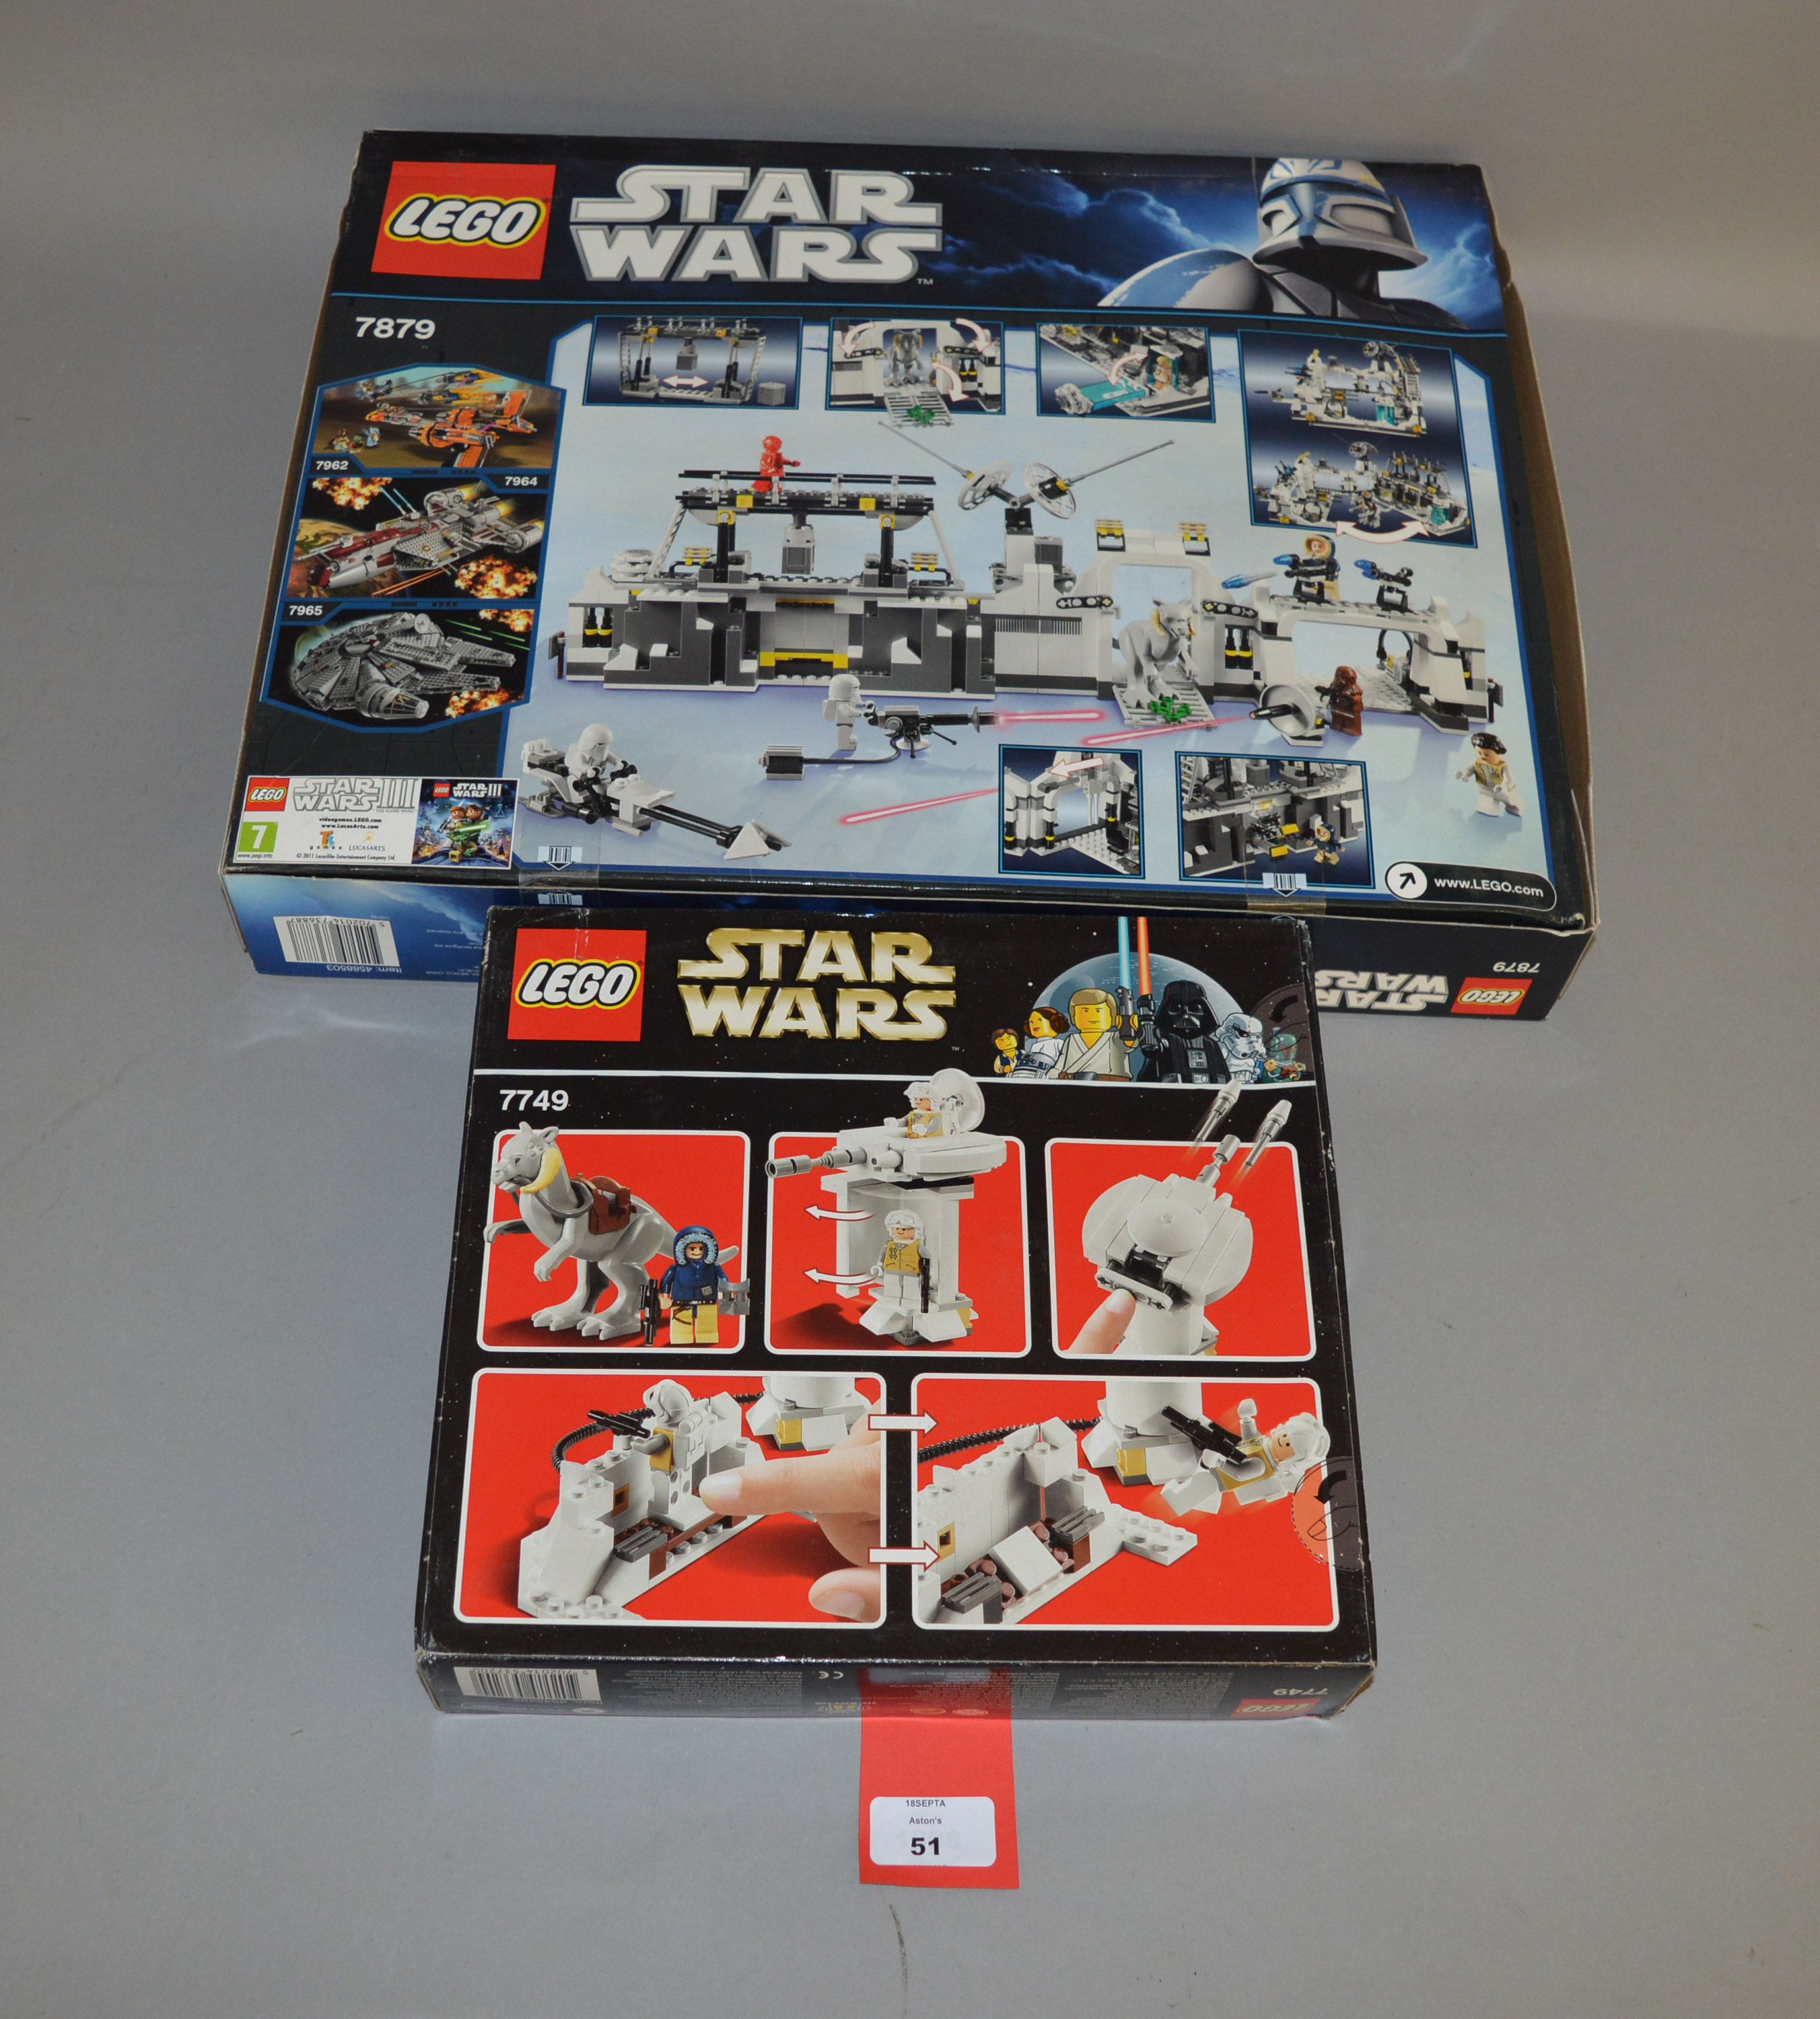 Lot 51 - Two Lego Star Wars sets: 7879 Hoth Echo Base; 7749 Echo Base. Both sealed.